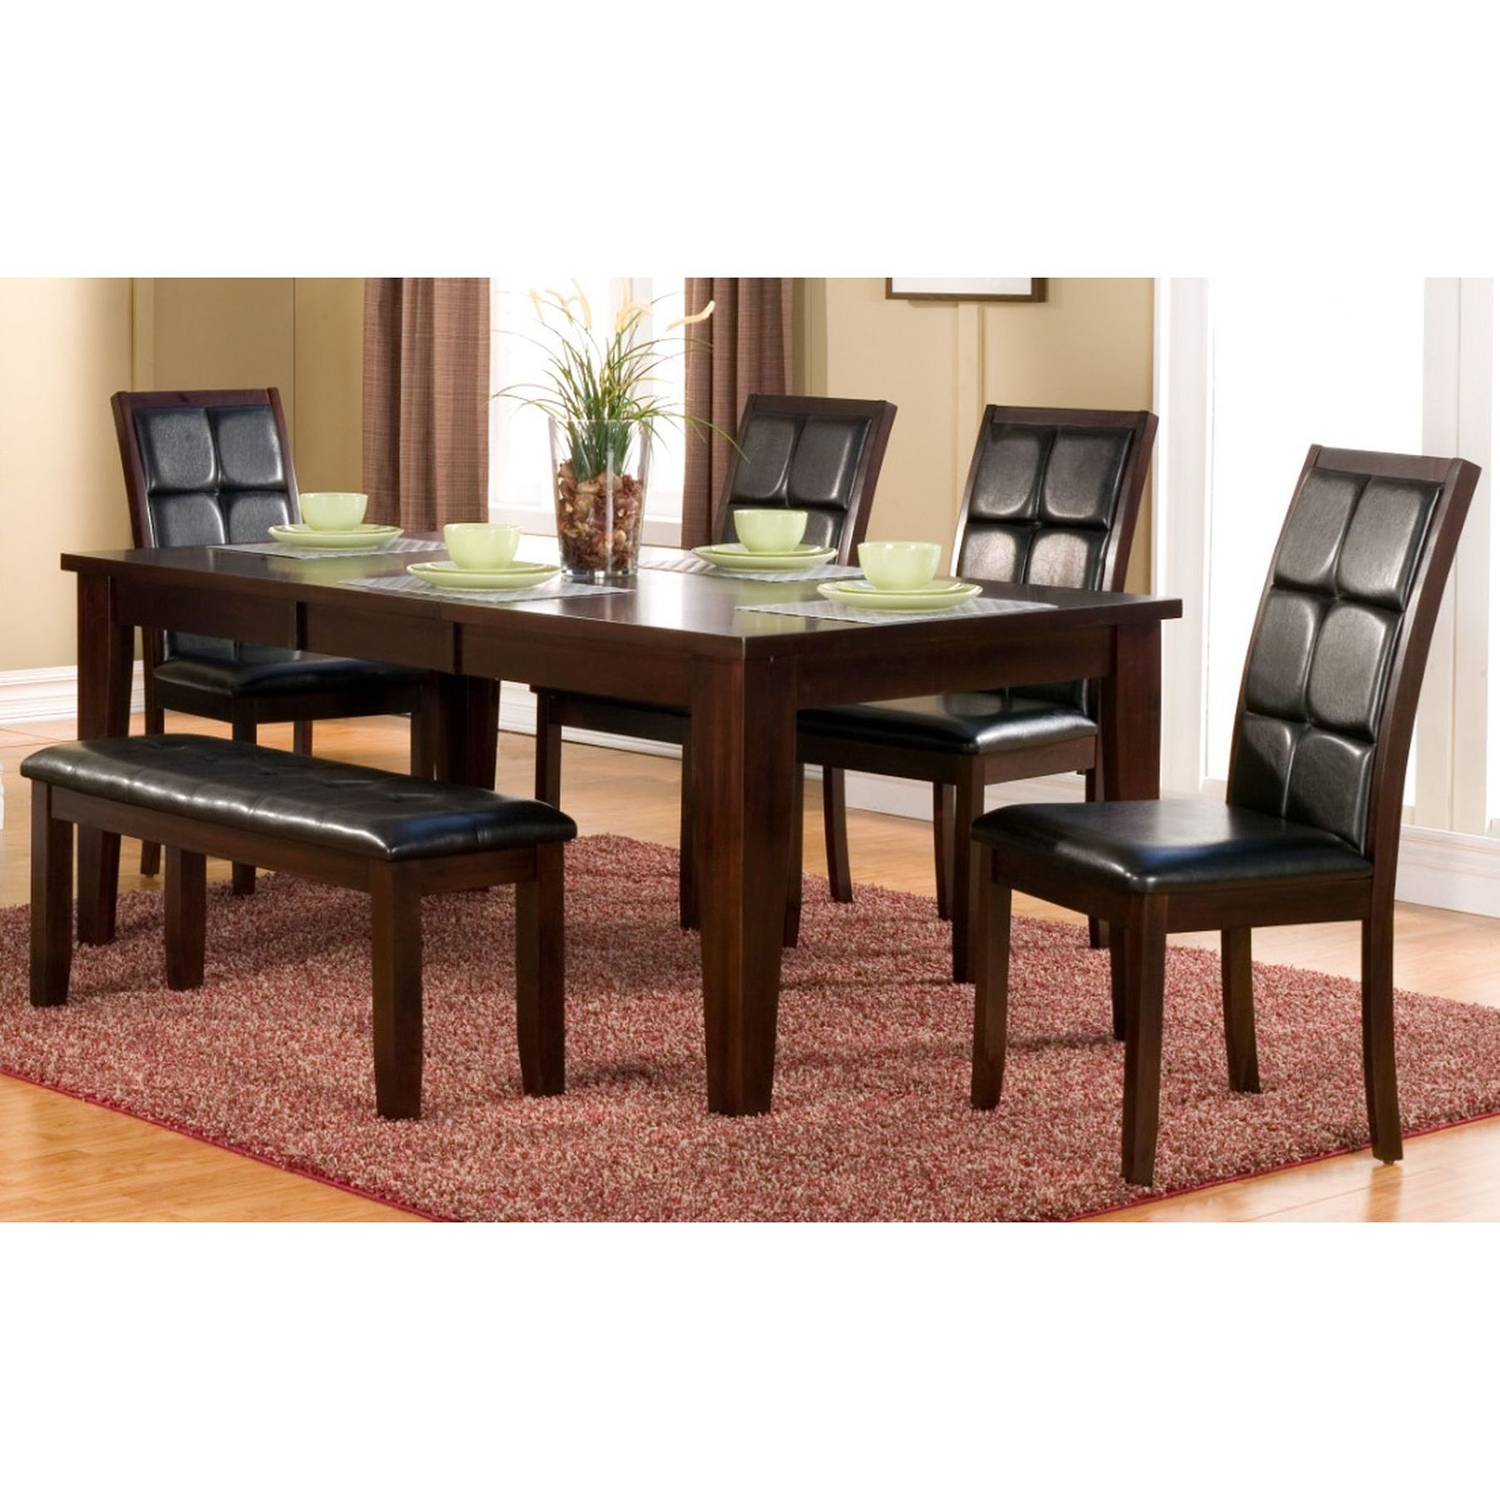 Havenhurst 6-Piece Dining Set - Merlot